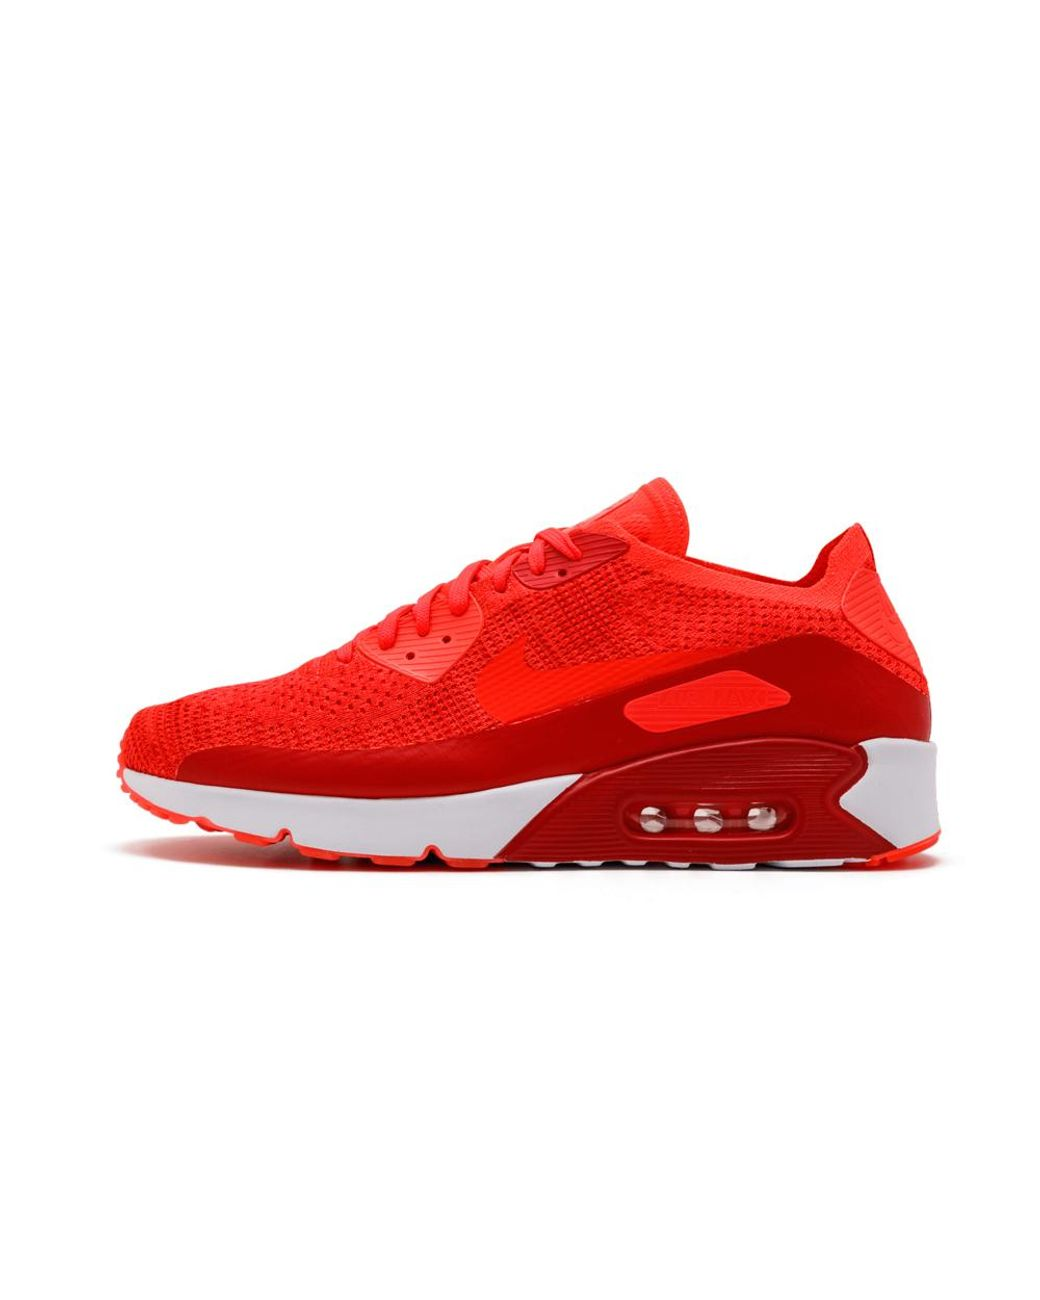 Nike Air Max 90 Ultra 2.0 Flyknit Shoes Size 12 in 9.5